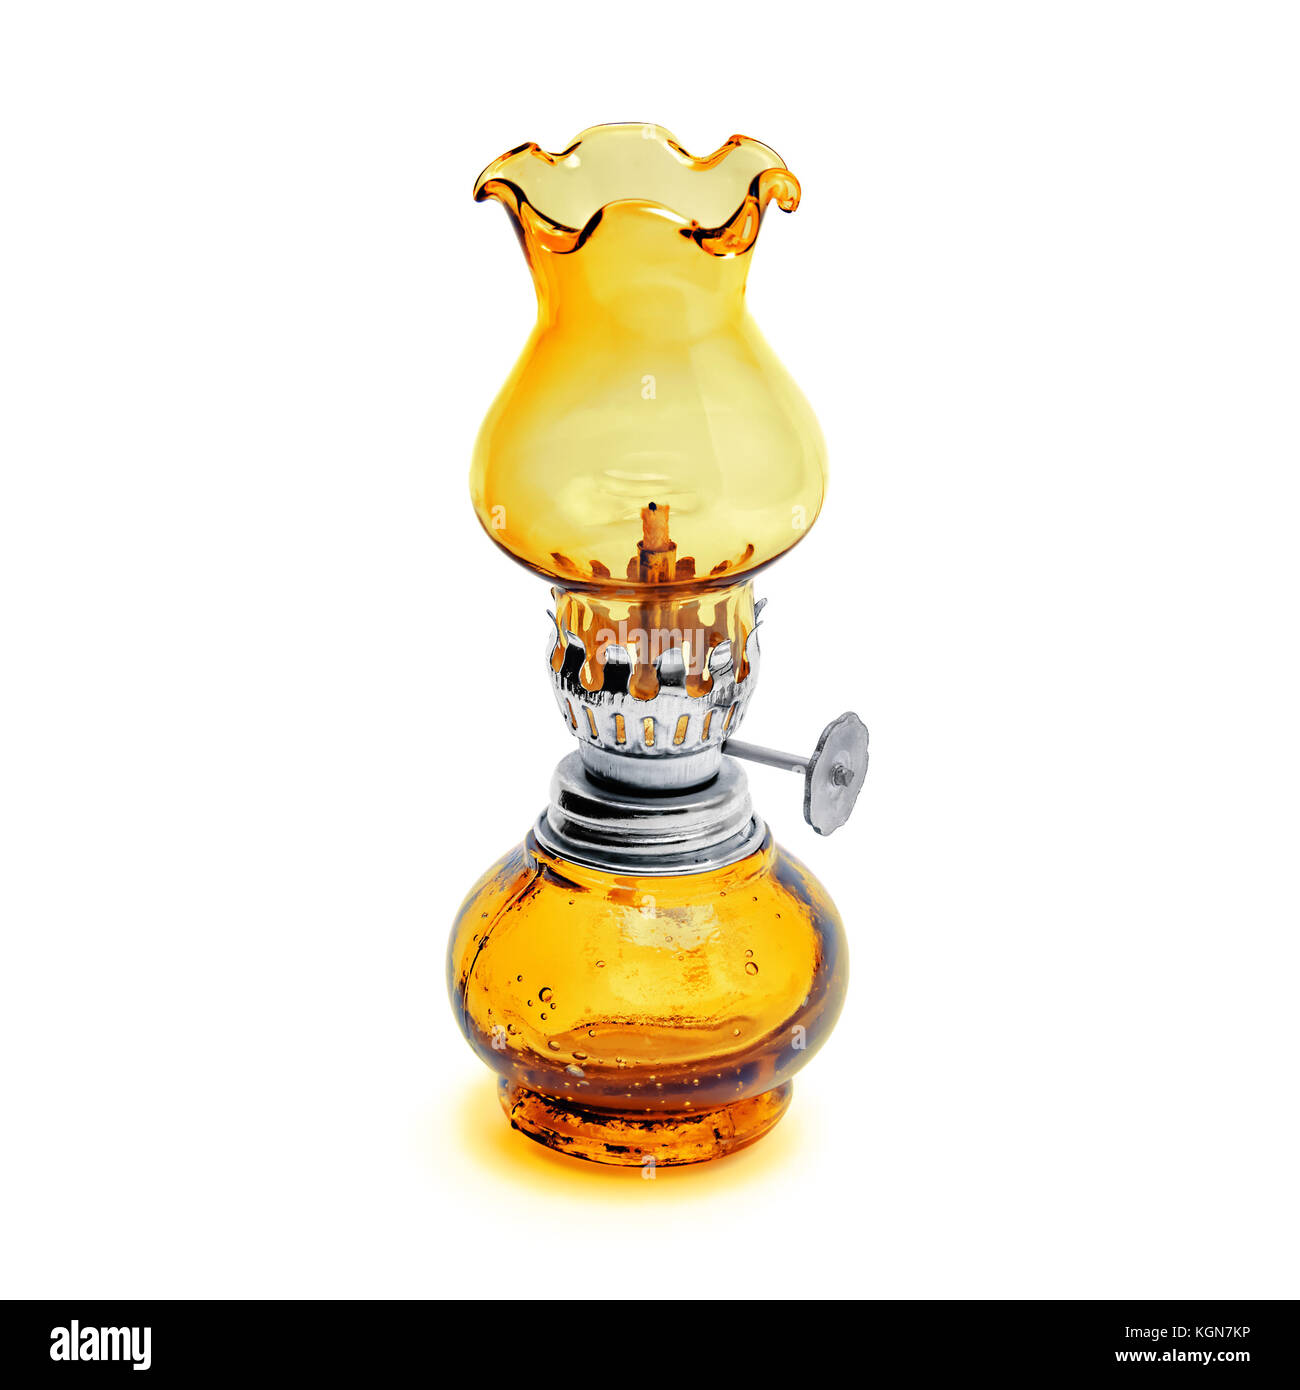 Oil lamp wick lantern made of yellow glass and metal isolated on white background - Stock Image